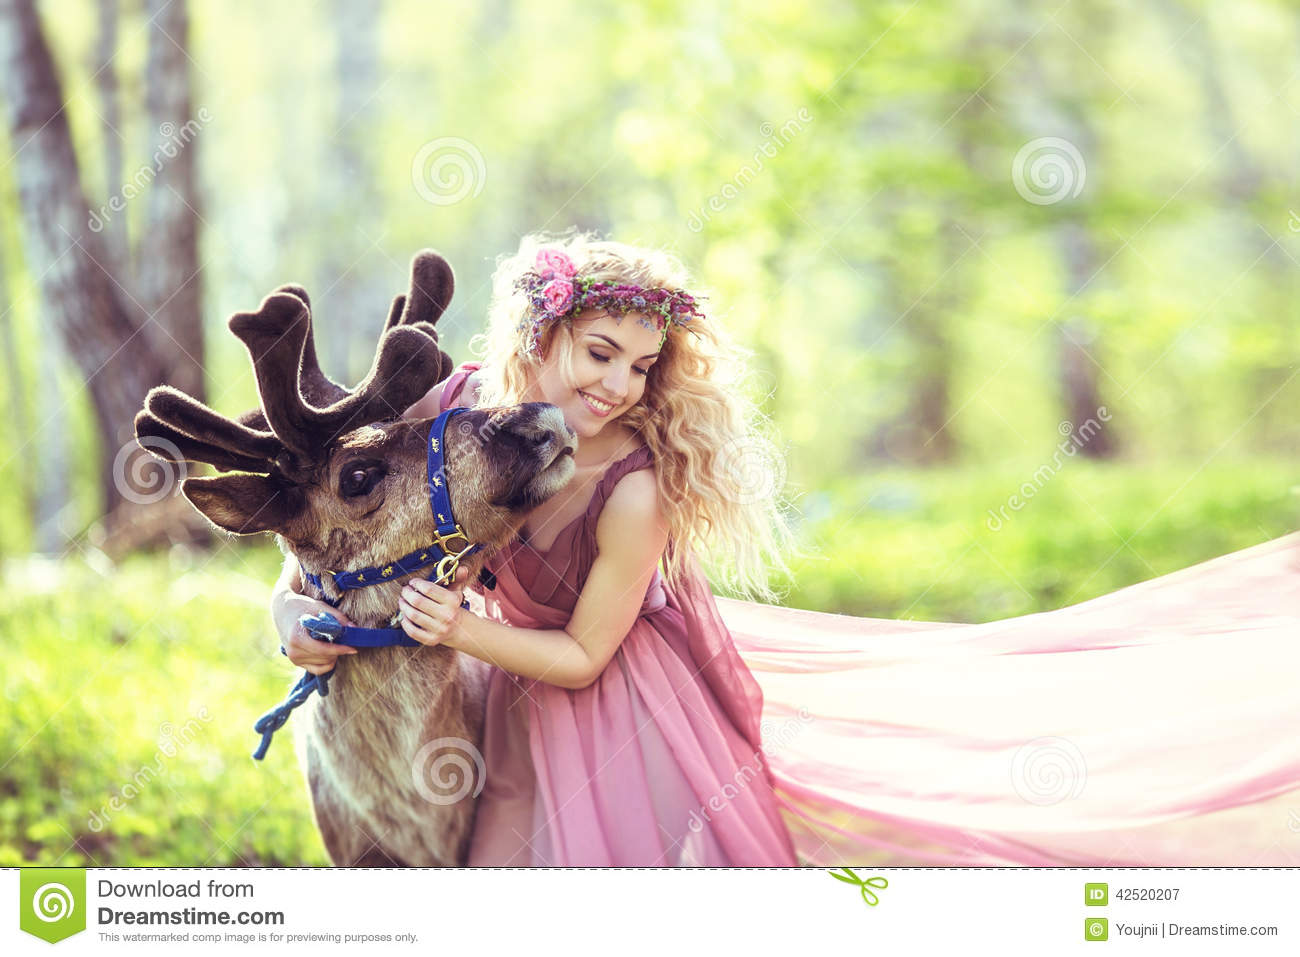 Beautiful Girl Hugging A Reindeer In The Forest Stock